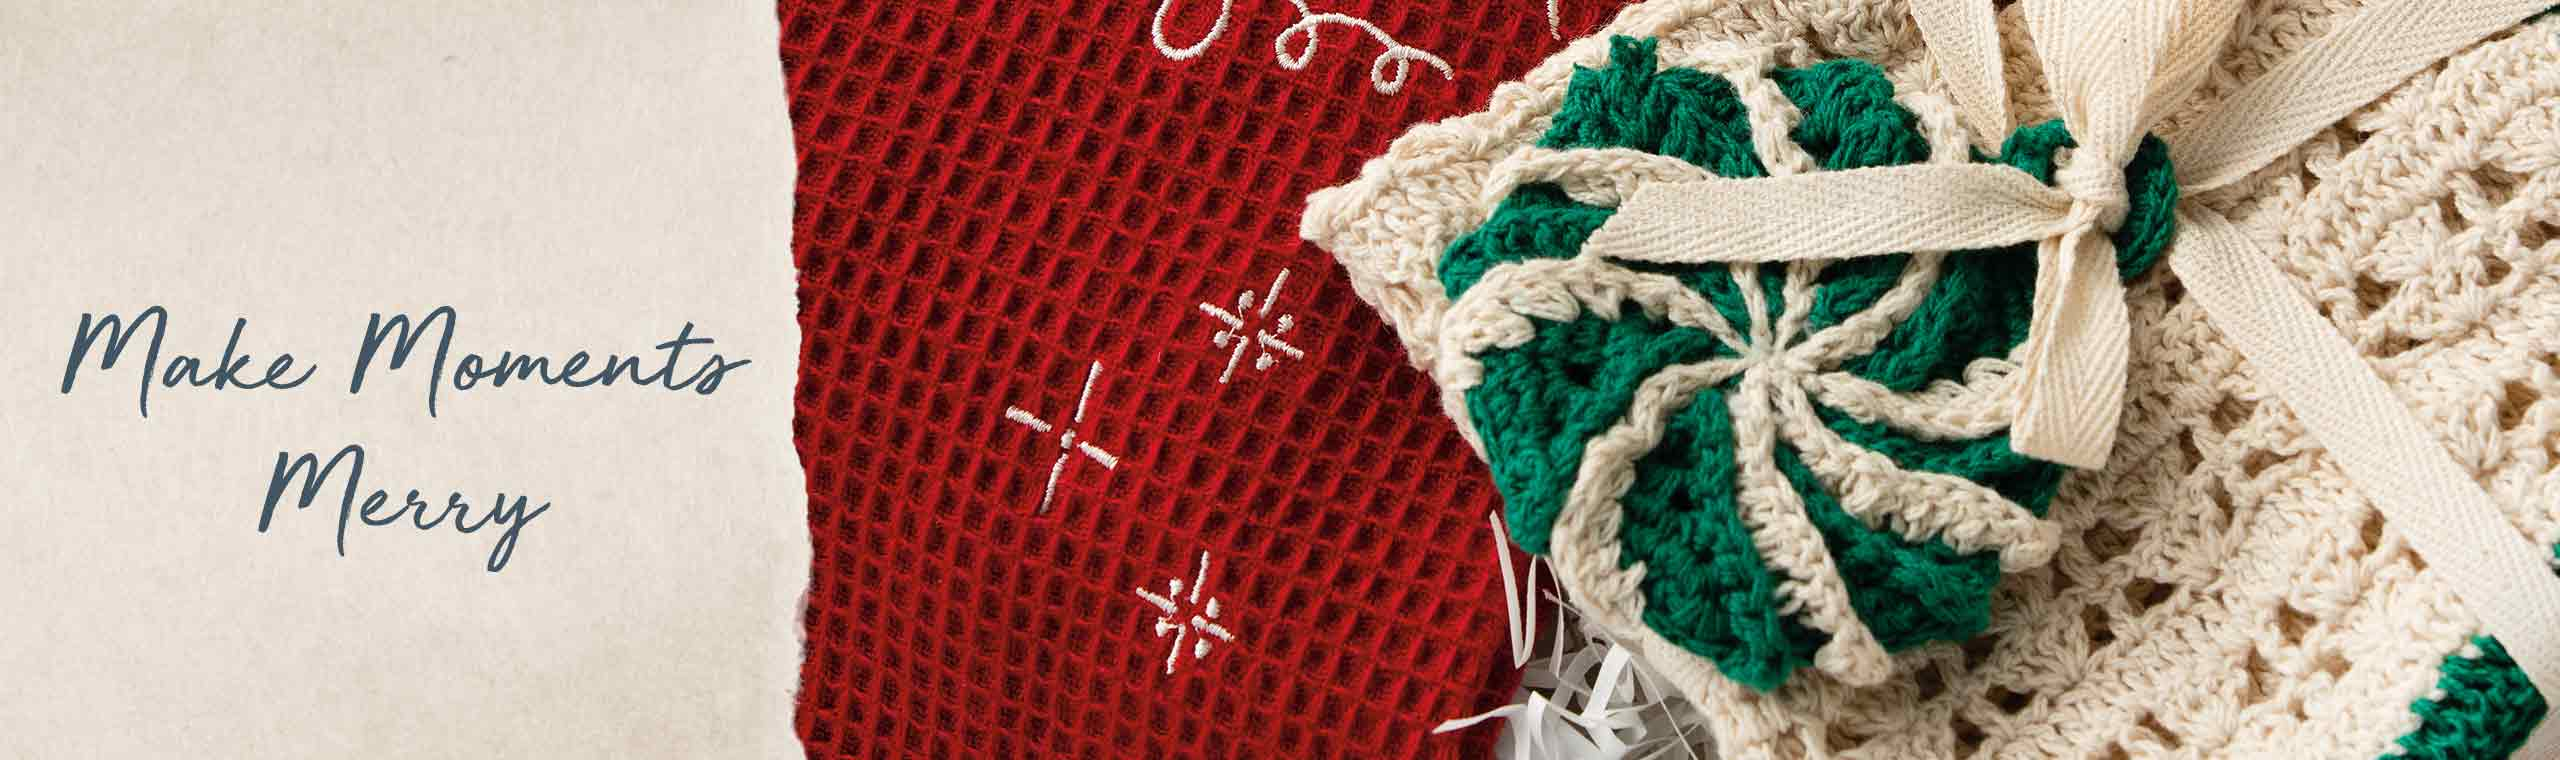 Making moments messy. a picture of a red, white and green towel